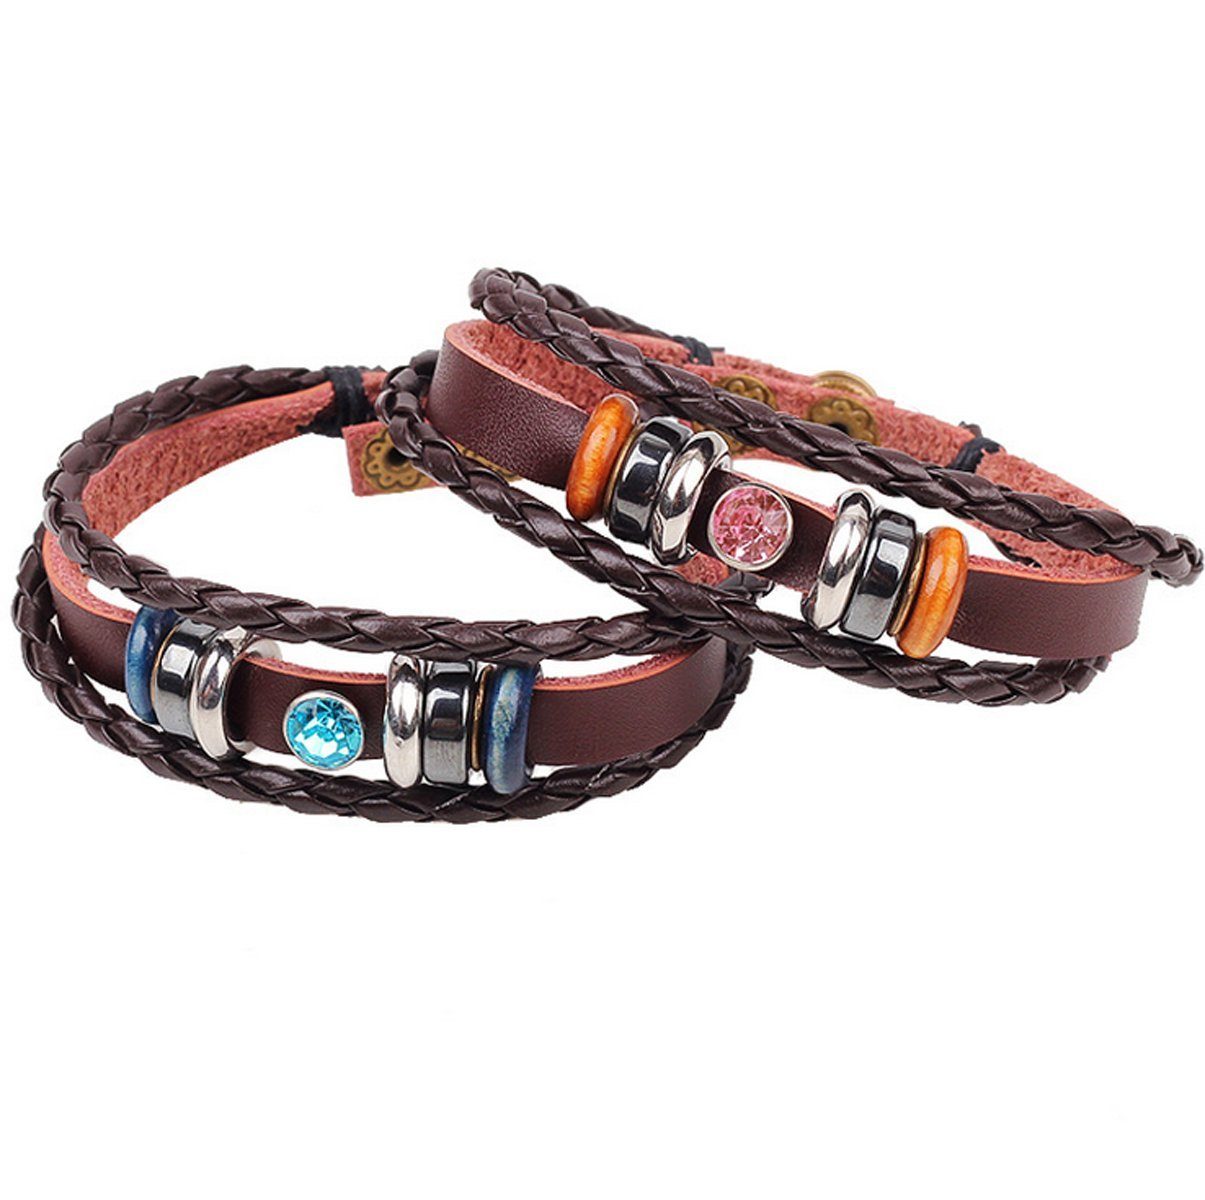 Distance Couples Bracelets Friendship Bracelets Relationship His and Hers Bracelets Jewelry Long Distance Relationship Gift for Lover Wedding, (Leather gemstone)